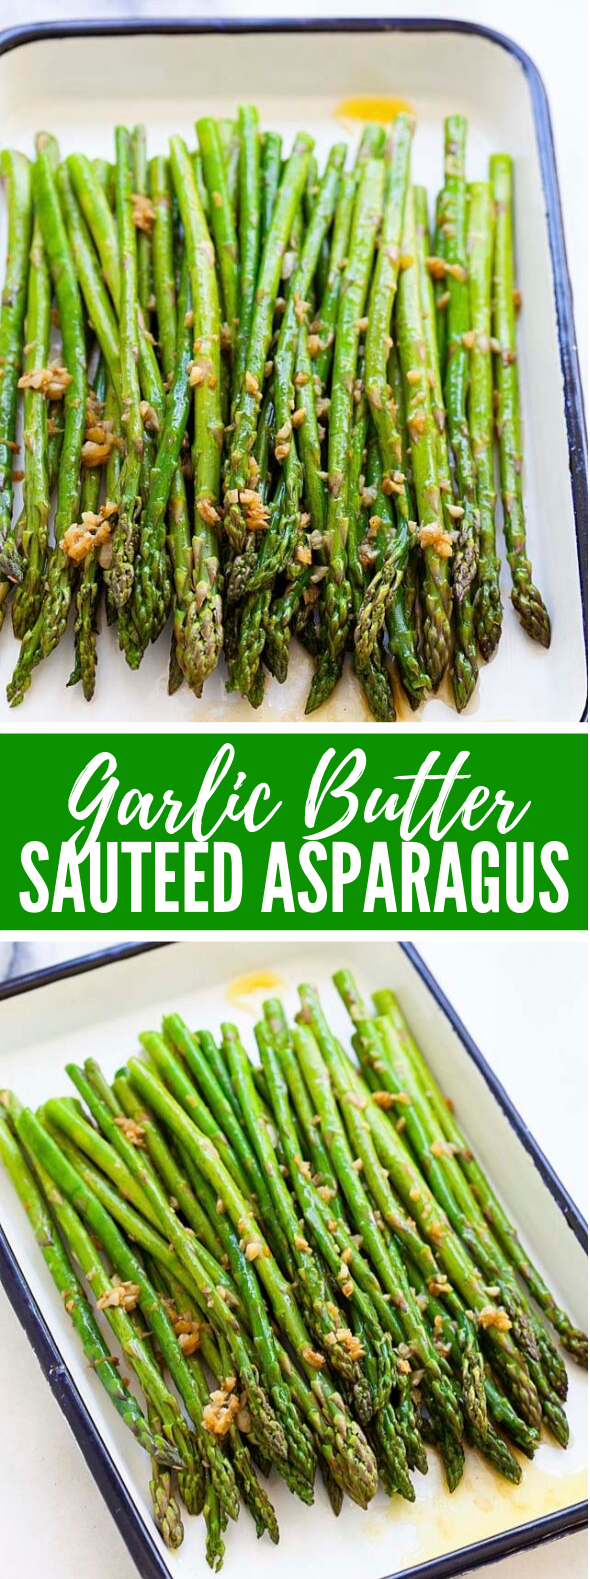 Garlic Butter Sauteed Asparagus #veggies #dinner